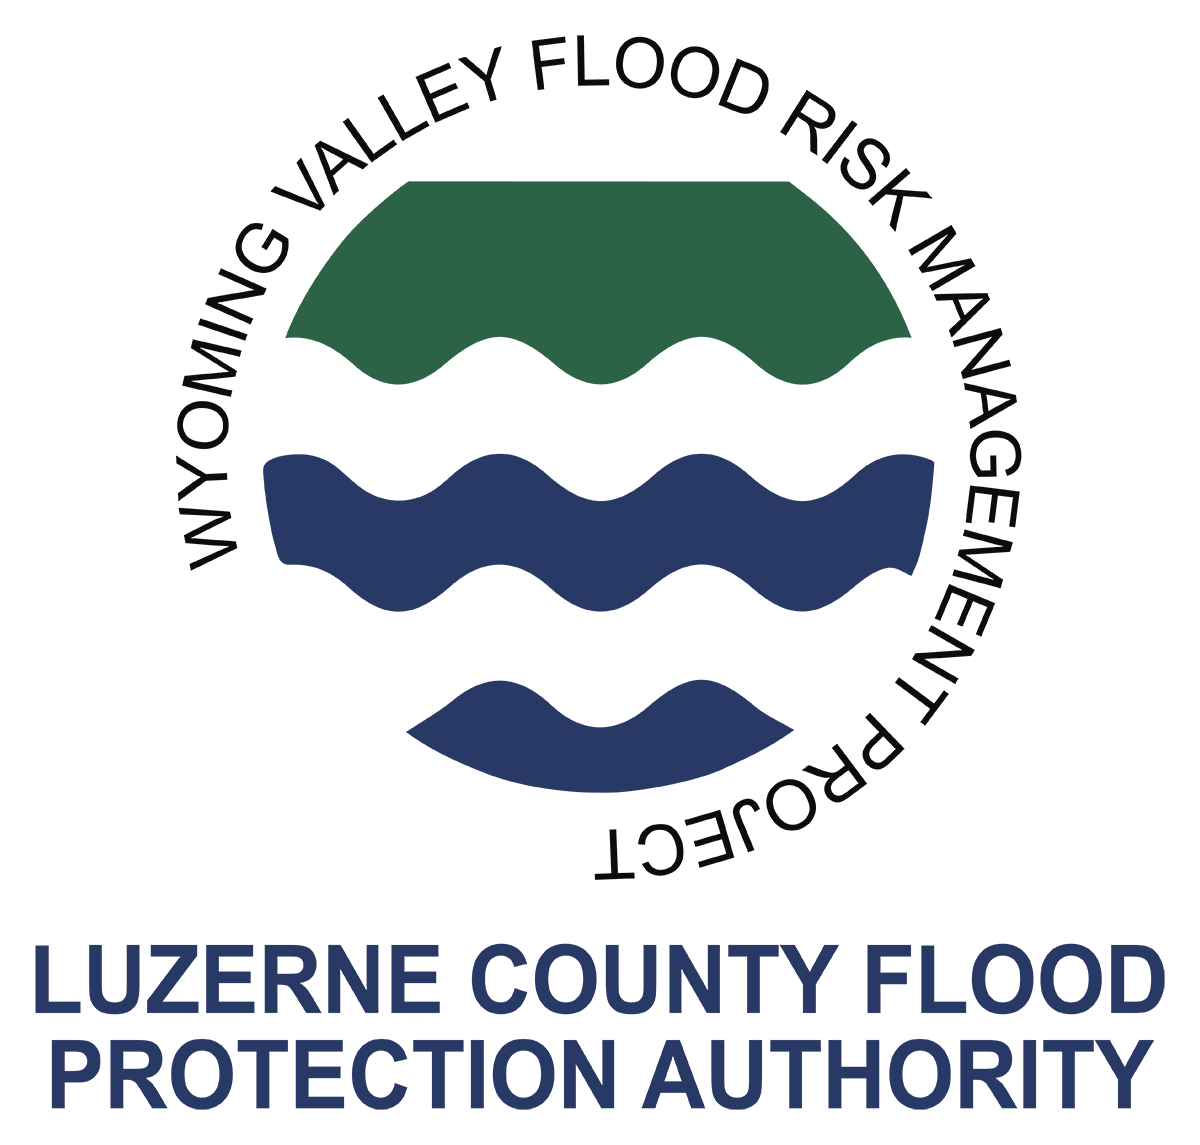 Luzerne County Flood Protection Authority